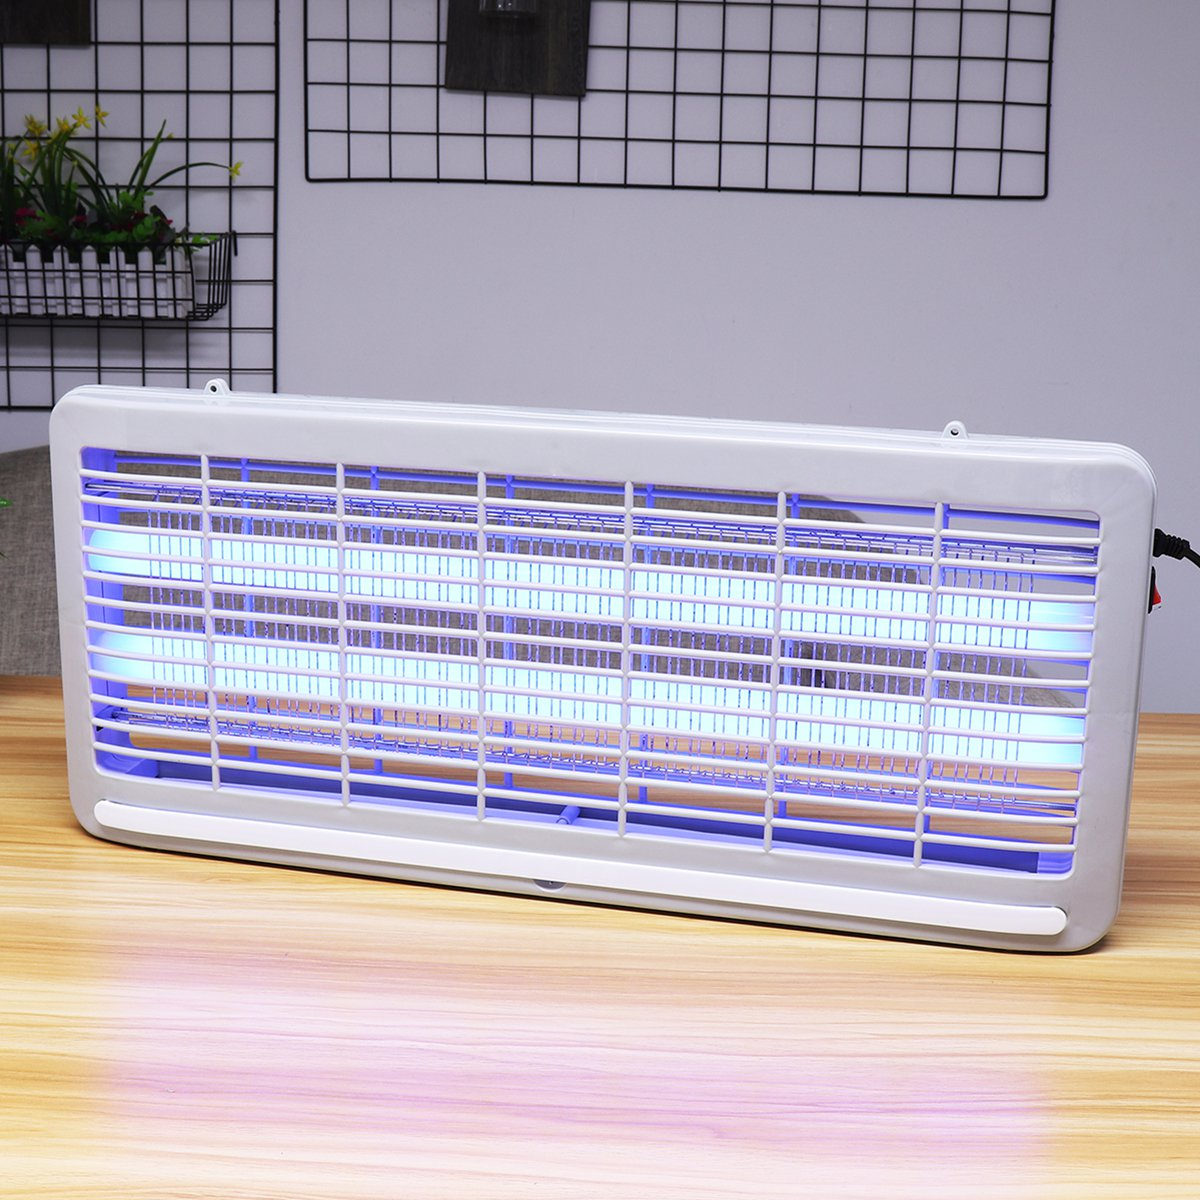 2/4/6/8W LED Electric Insect Killer UV-A Mosquito Pest Fly Bug Zapper Catcher Traps Home Garden Pest Control Tools Supplies